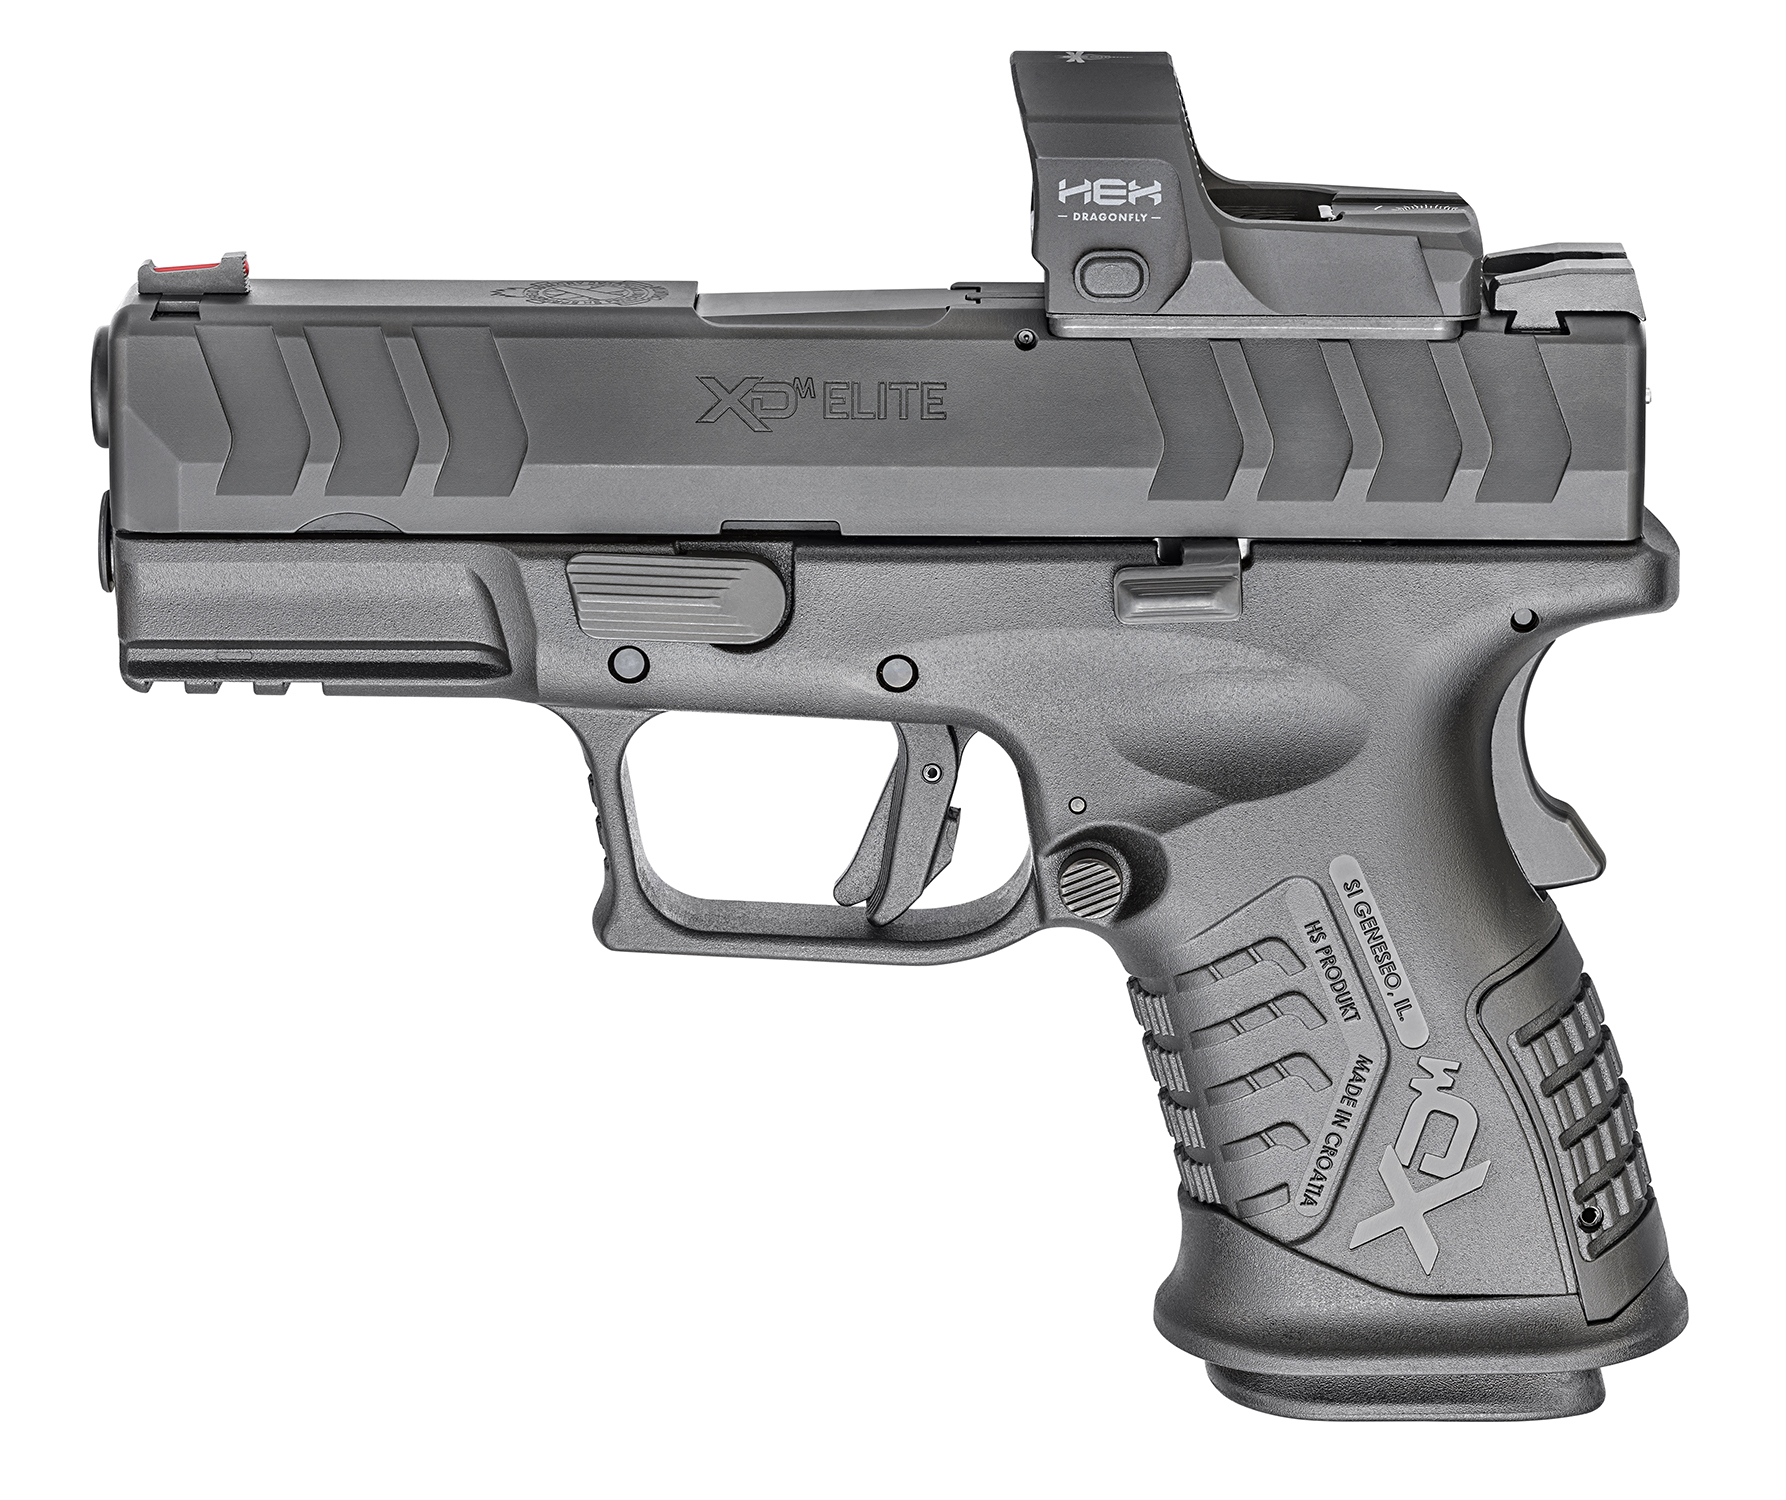 springfield armory xdm elite 3.8 compact pistol optics cut slide